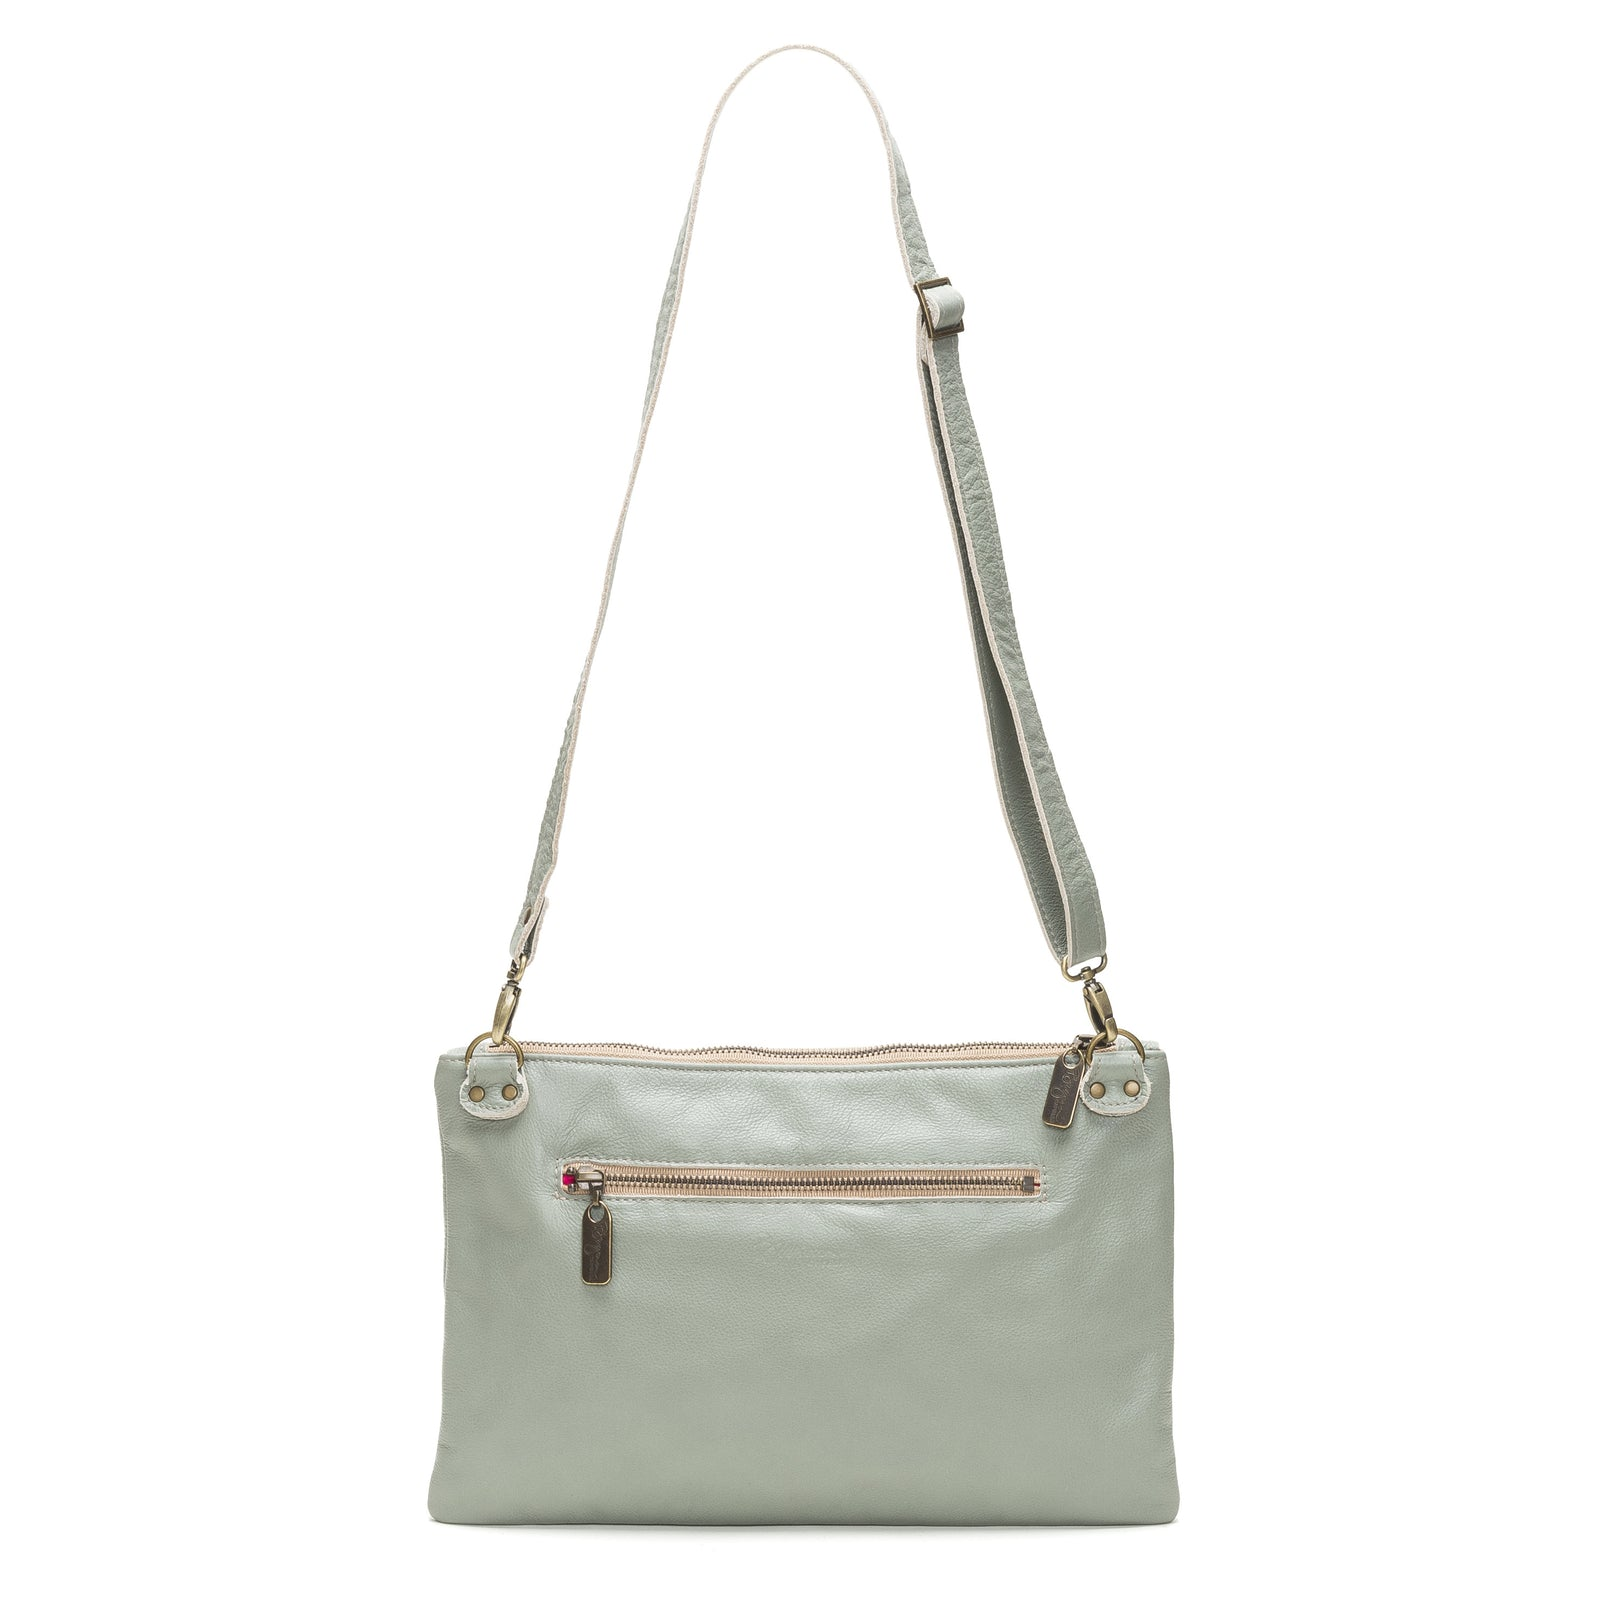 Nikki Clutch/Crossbody - Sea Breeze - Brynn Capella, Small Crossbody